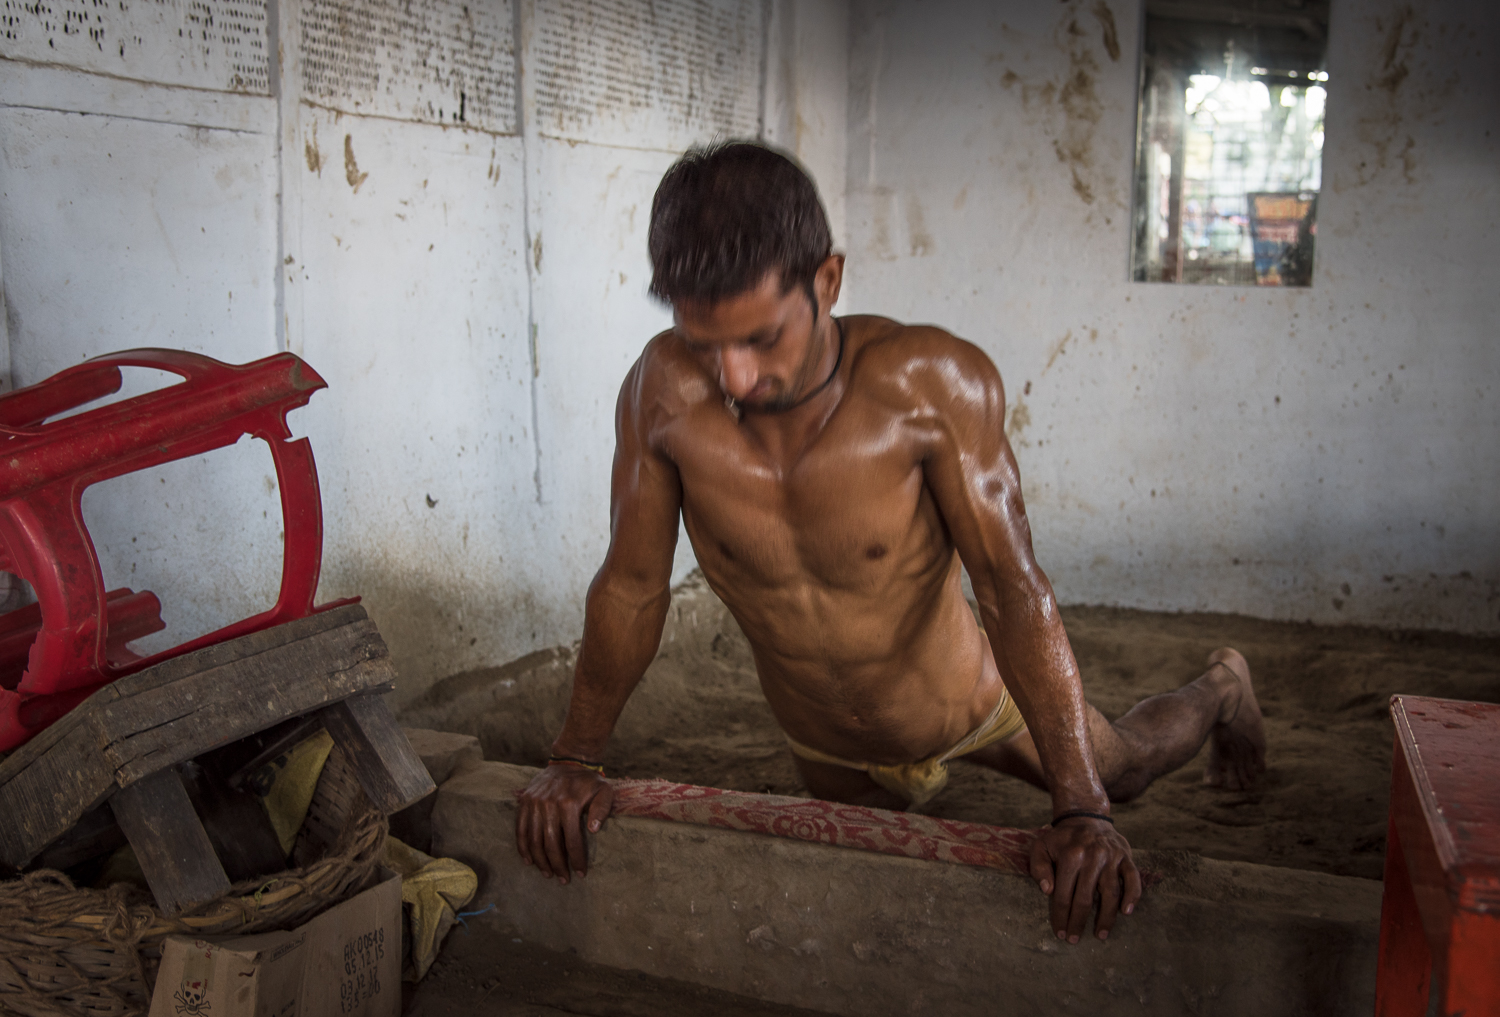 "© Ayash Basu. 20 year old Suraj Kant Tiwari (Jwala Kant's son) is an emerging wrestler. While his father is away at Gorakhpur to attend to family matters, he oversees the daily operations of the akhara. Most young athletes today, look for the means and access to modern gyms and equipment for training. The results are quicker, as more advanced training is possible. ""But your body looses flexibility and agility, which are extremely important for a wrestler. This is hard work done in very basic environments but we'd rather stick to this to preserve longevity,"" argues Suraj Kant as he does 3 sets of 50 push ups each following his prayers. Suraj has participated in and won many local tournaments, once inches away from wrestling in the national championships until he did not make it. ""Winning tournaments is good as it gives us exposure and recognition, but kushti is a way of life for us, has been in my family for many generations and we must work harder to keep its survival. In this day and age, nobody cares about kushti and pehlwans."""